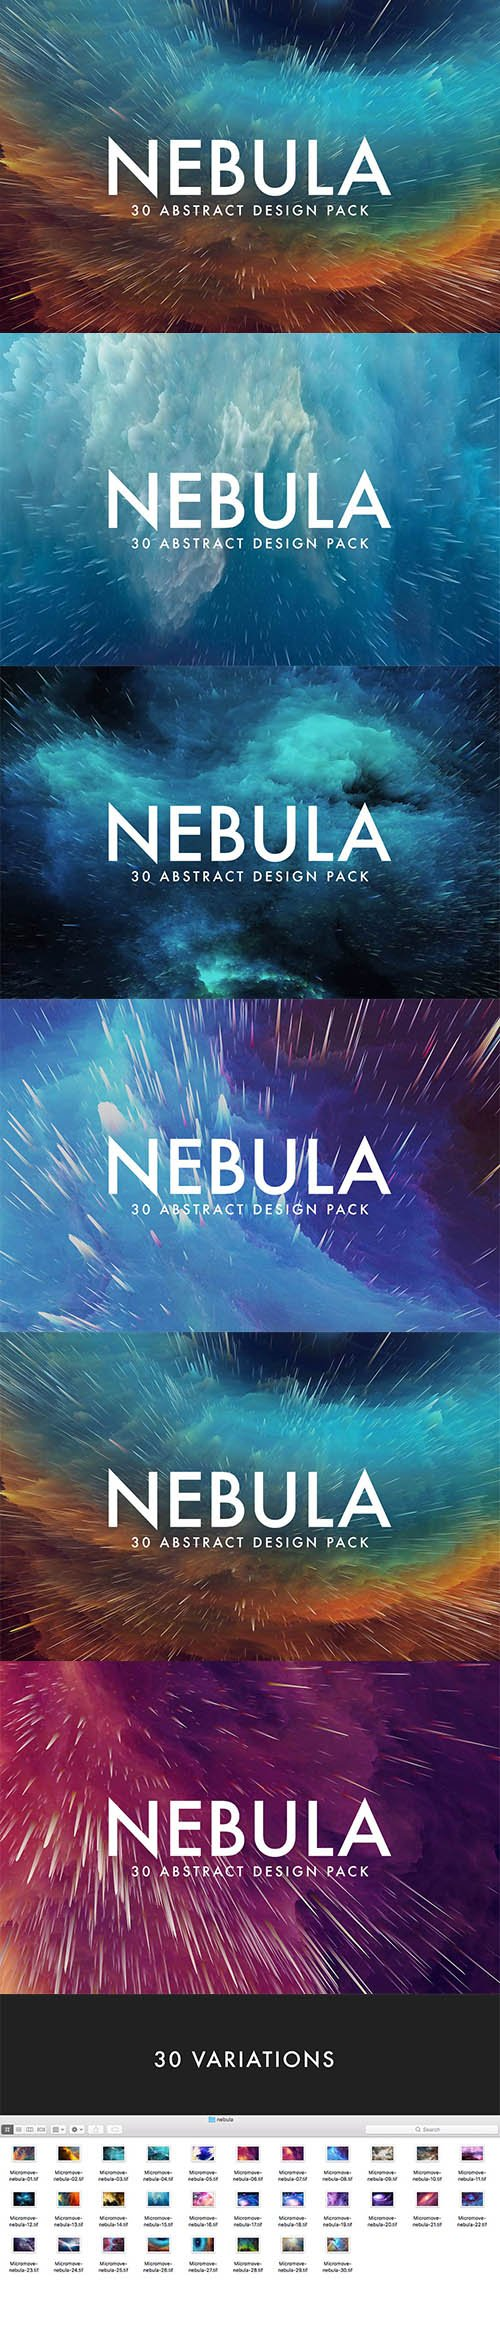 Nebula - 30 Abstract Design Pack